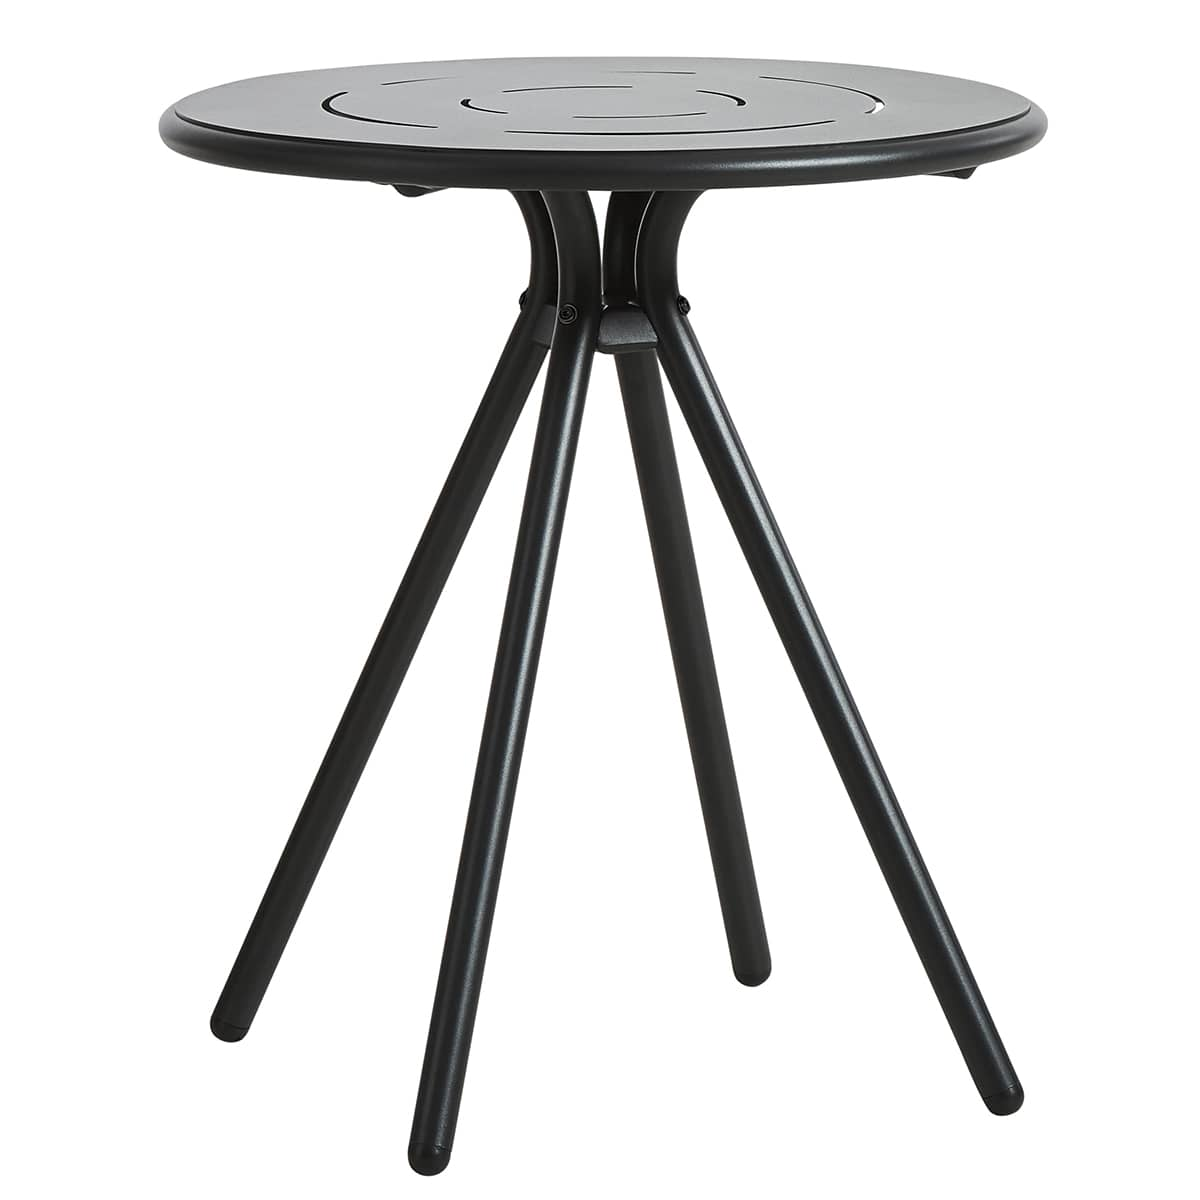 Tables outdoor RAY CAFE, ronde ou carrée, par FASTING & ROLFF pour WOUD